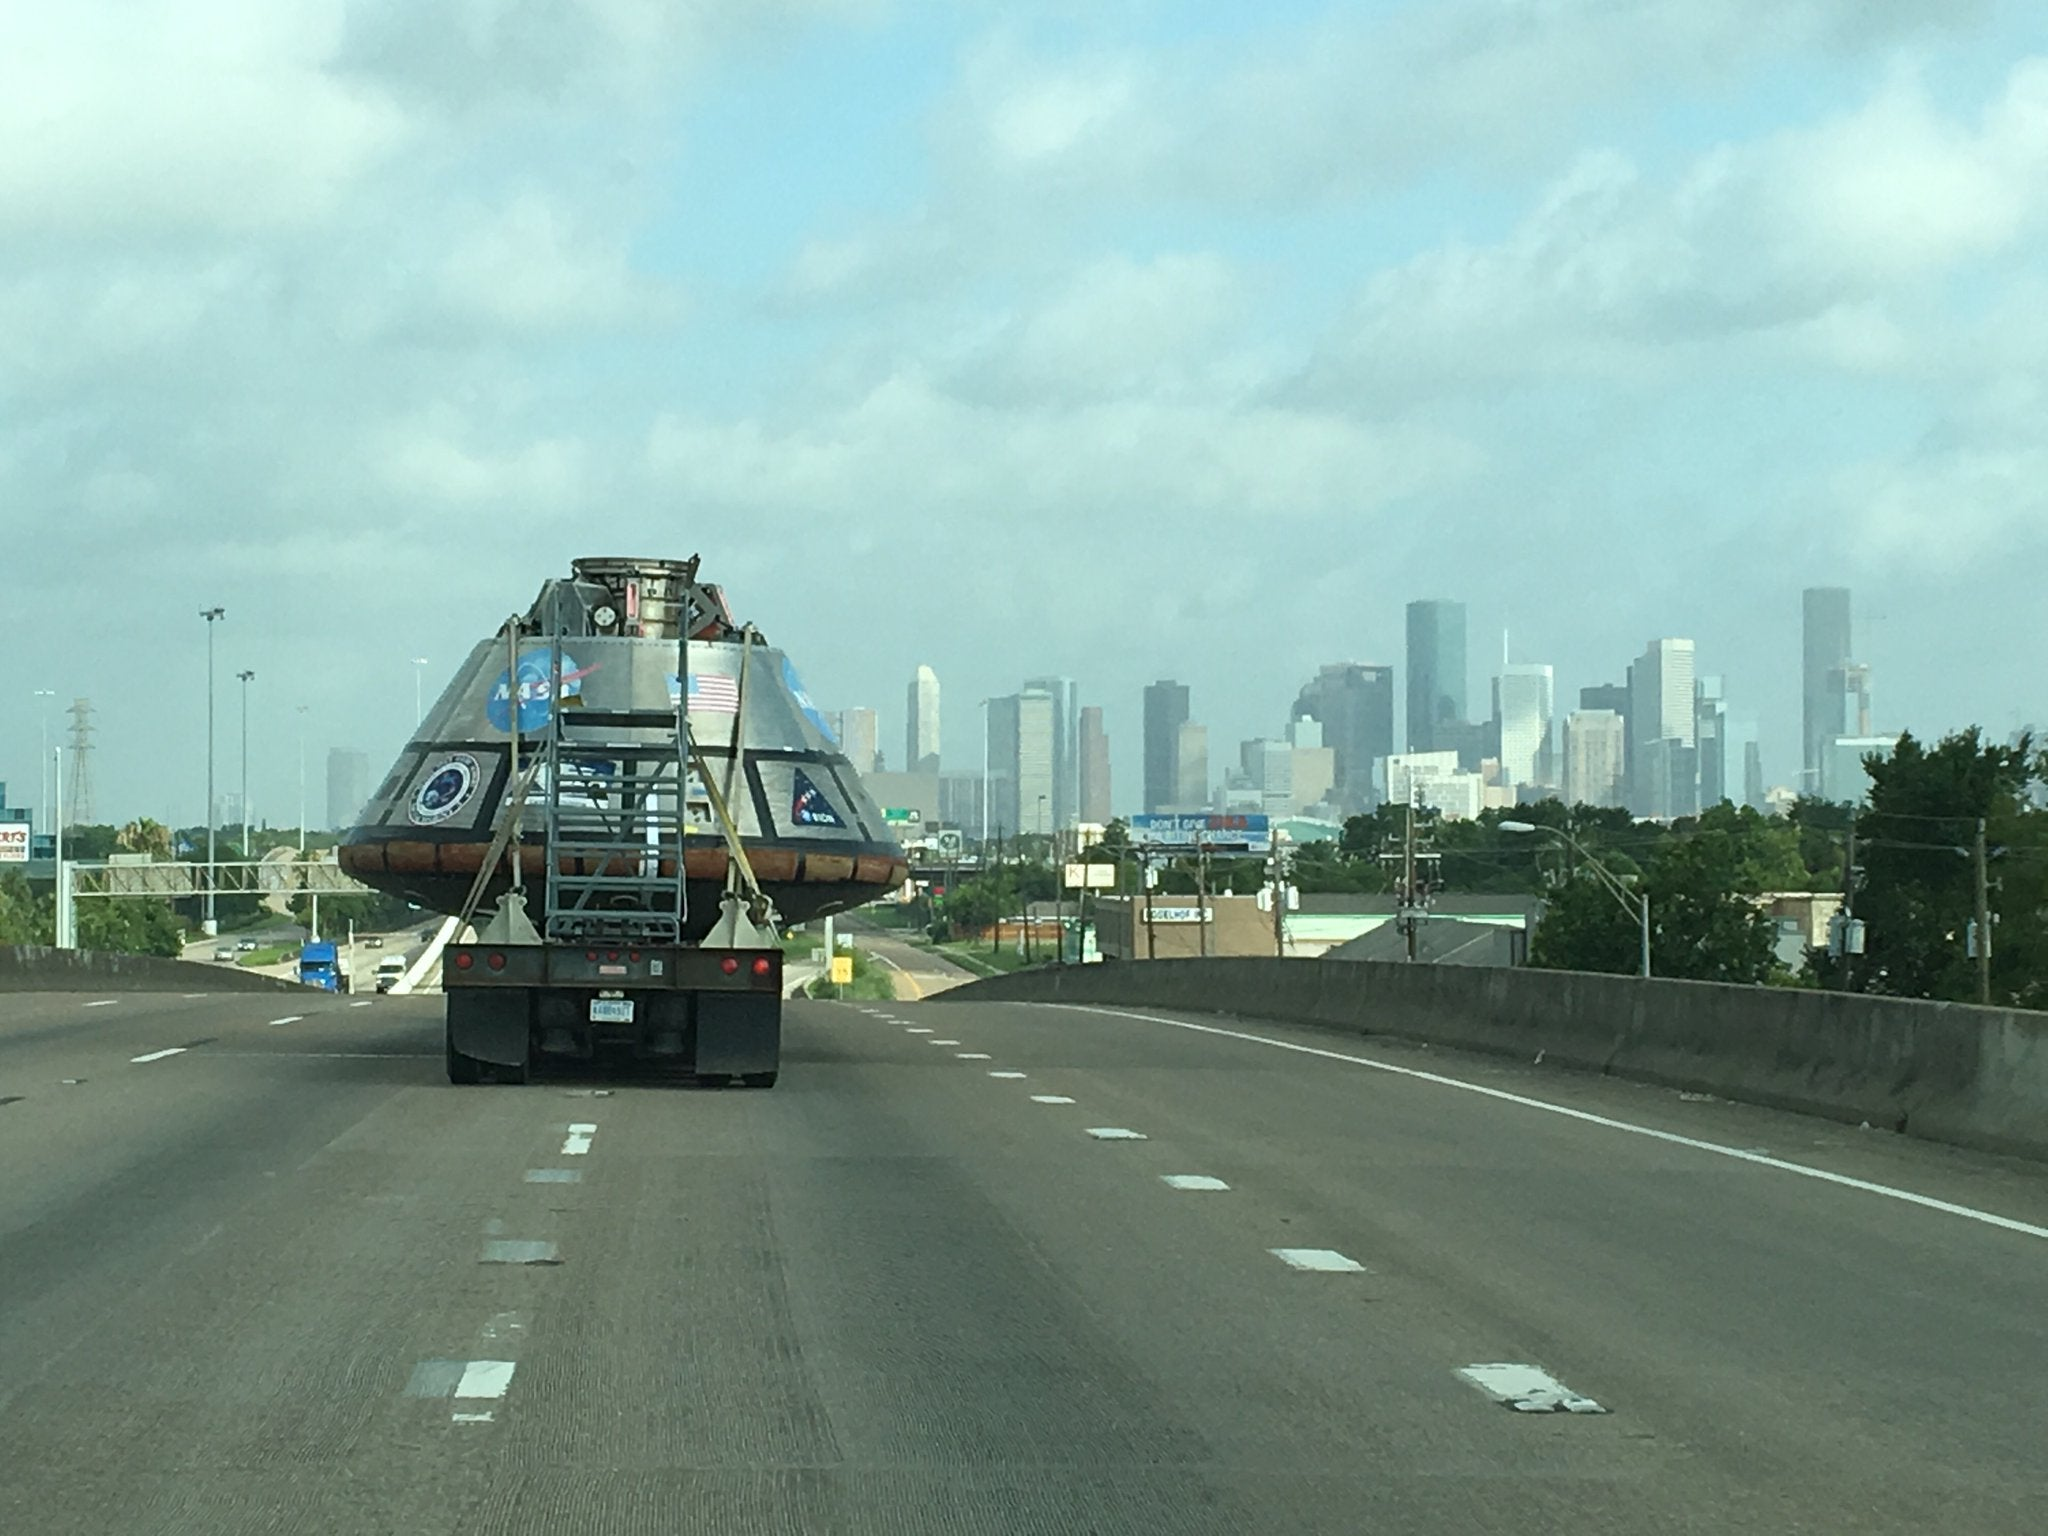 Where In The World Is The Orion Spacecraft?